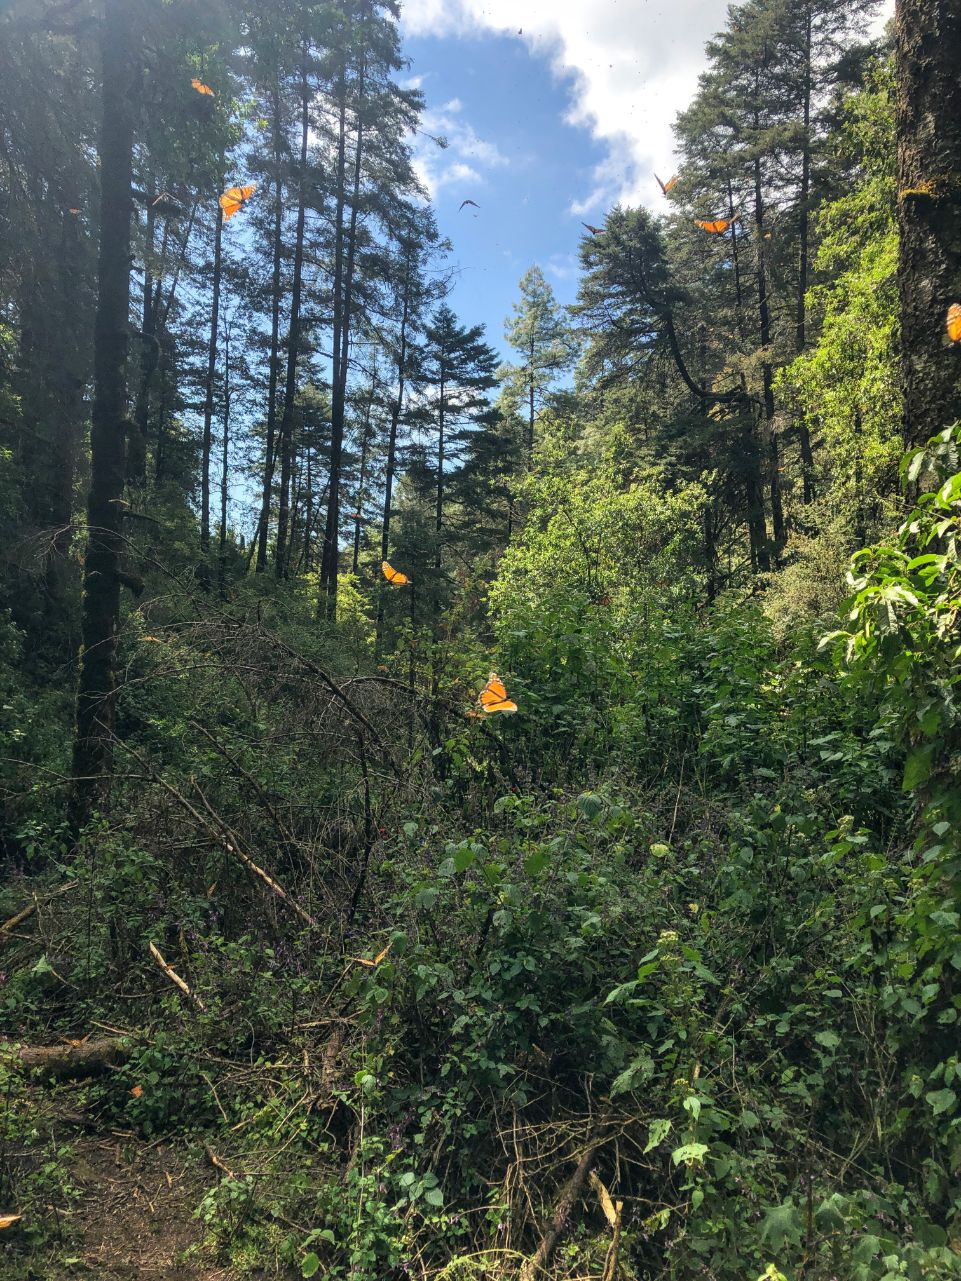 monarch butterflies in the forest at Cero Pelon